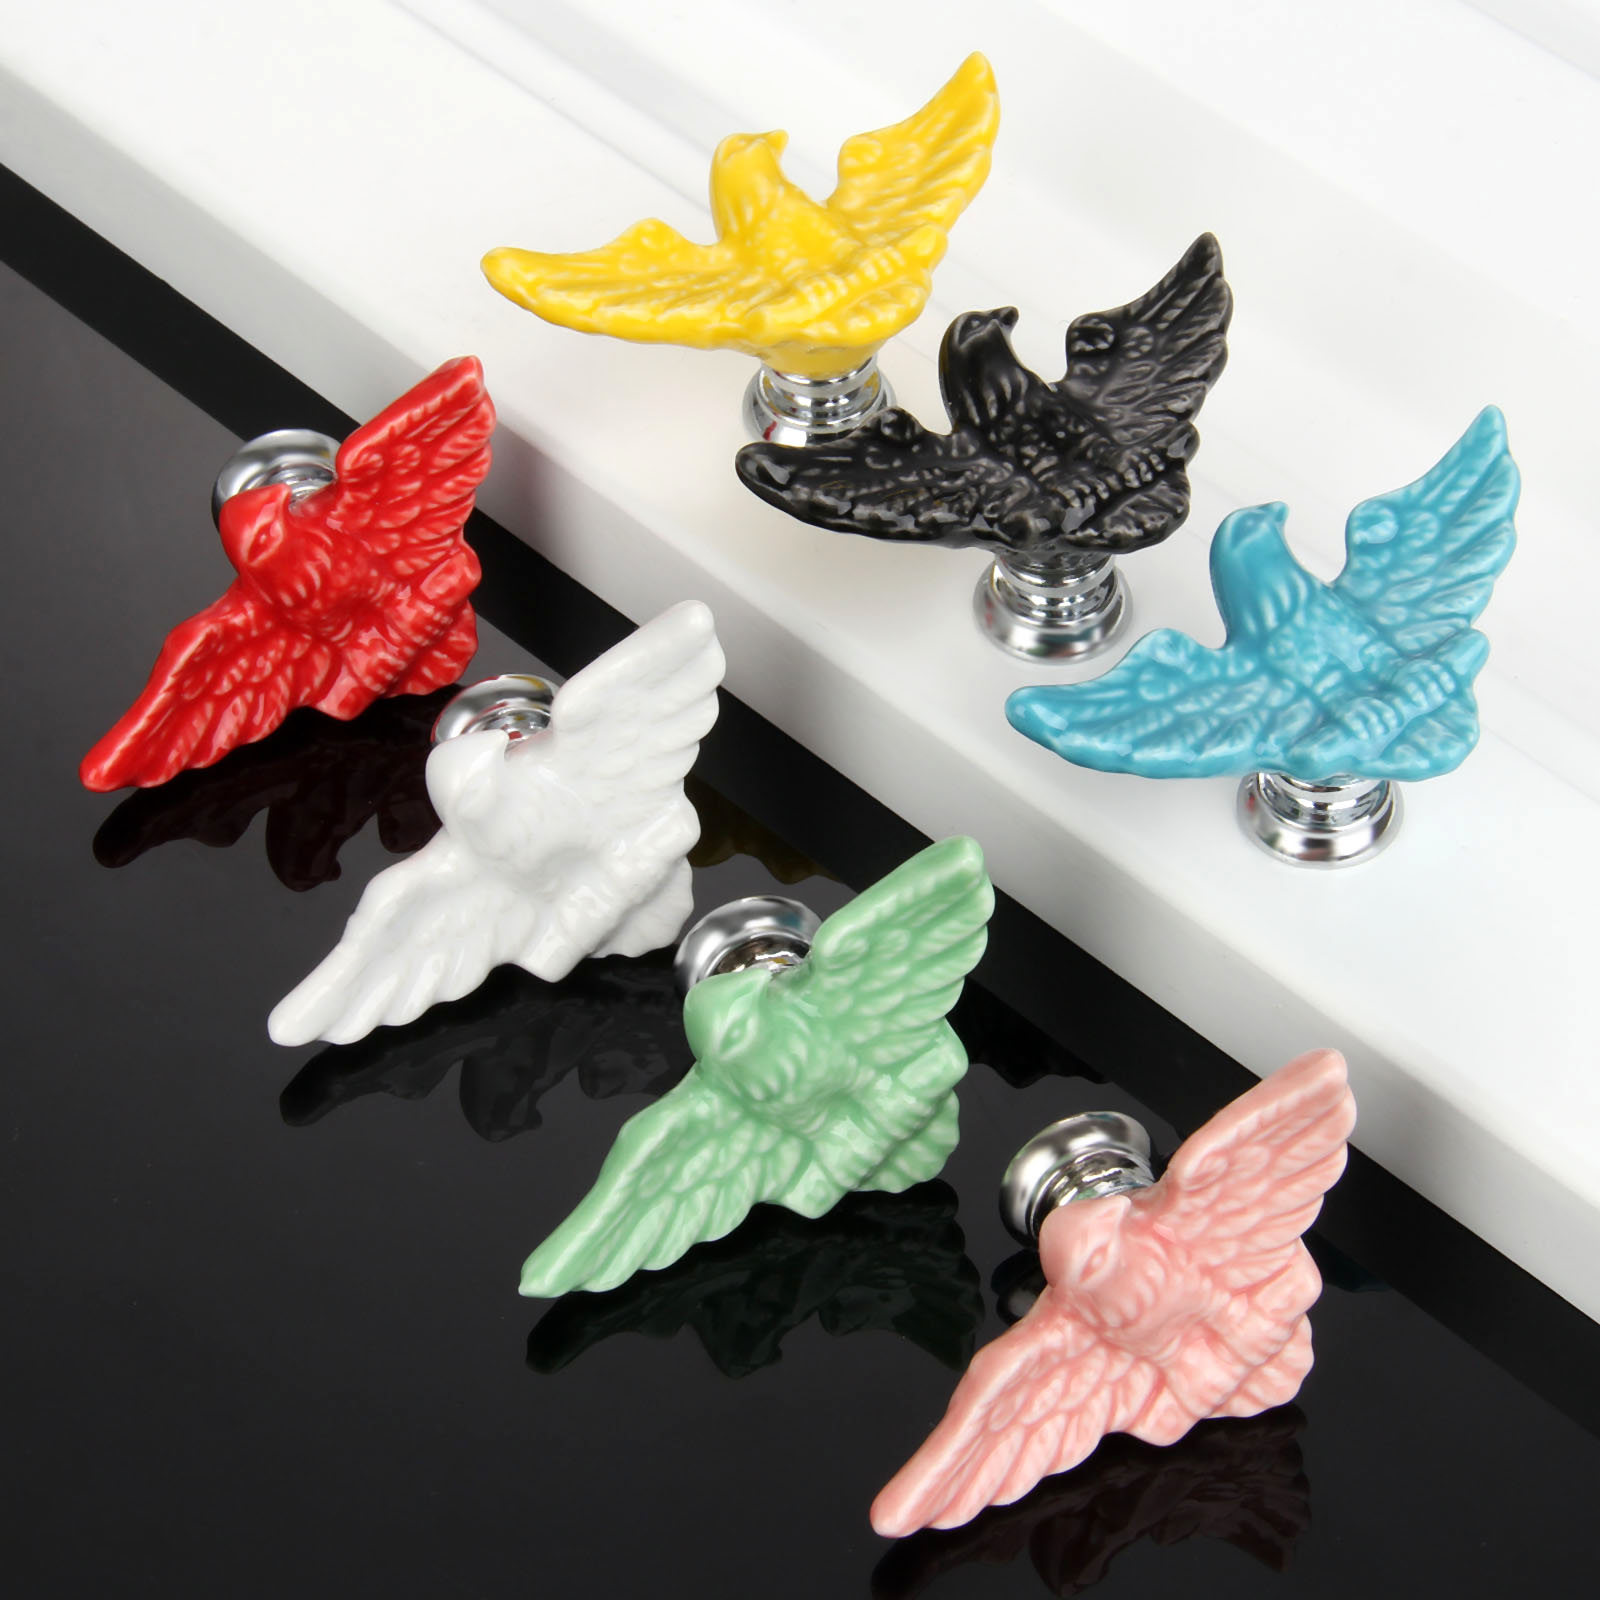 7Pcs Furniture Handles Eagle Cabinet Knobs and Handles Ceramic Door Knob Cupboard Drawer Kitchen Pull Handle for Children Room hot brown handle single hole leather door handles cabinet cupboard drawer pull knobs furniture kitchen accessories 96 160 192mm